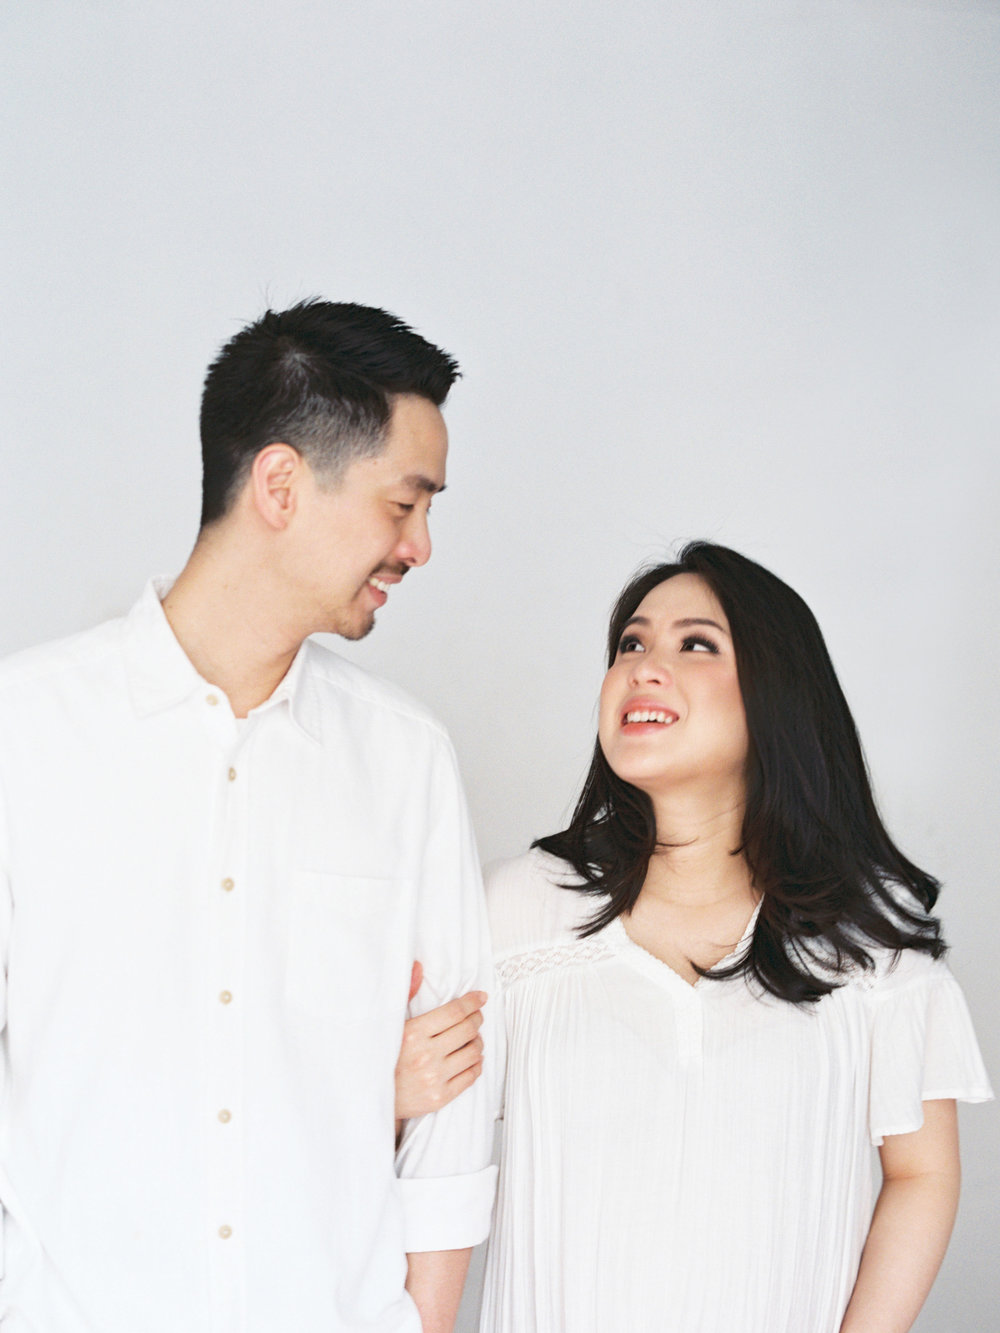 Gaby and Tim-Relaxed-Airy-Simple-Maternity Portrait Photoshoot-At Home-Jakarta-Studio June-Film Photography & Styling-26.jpg